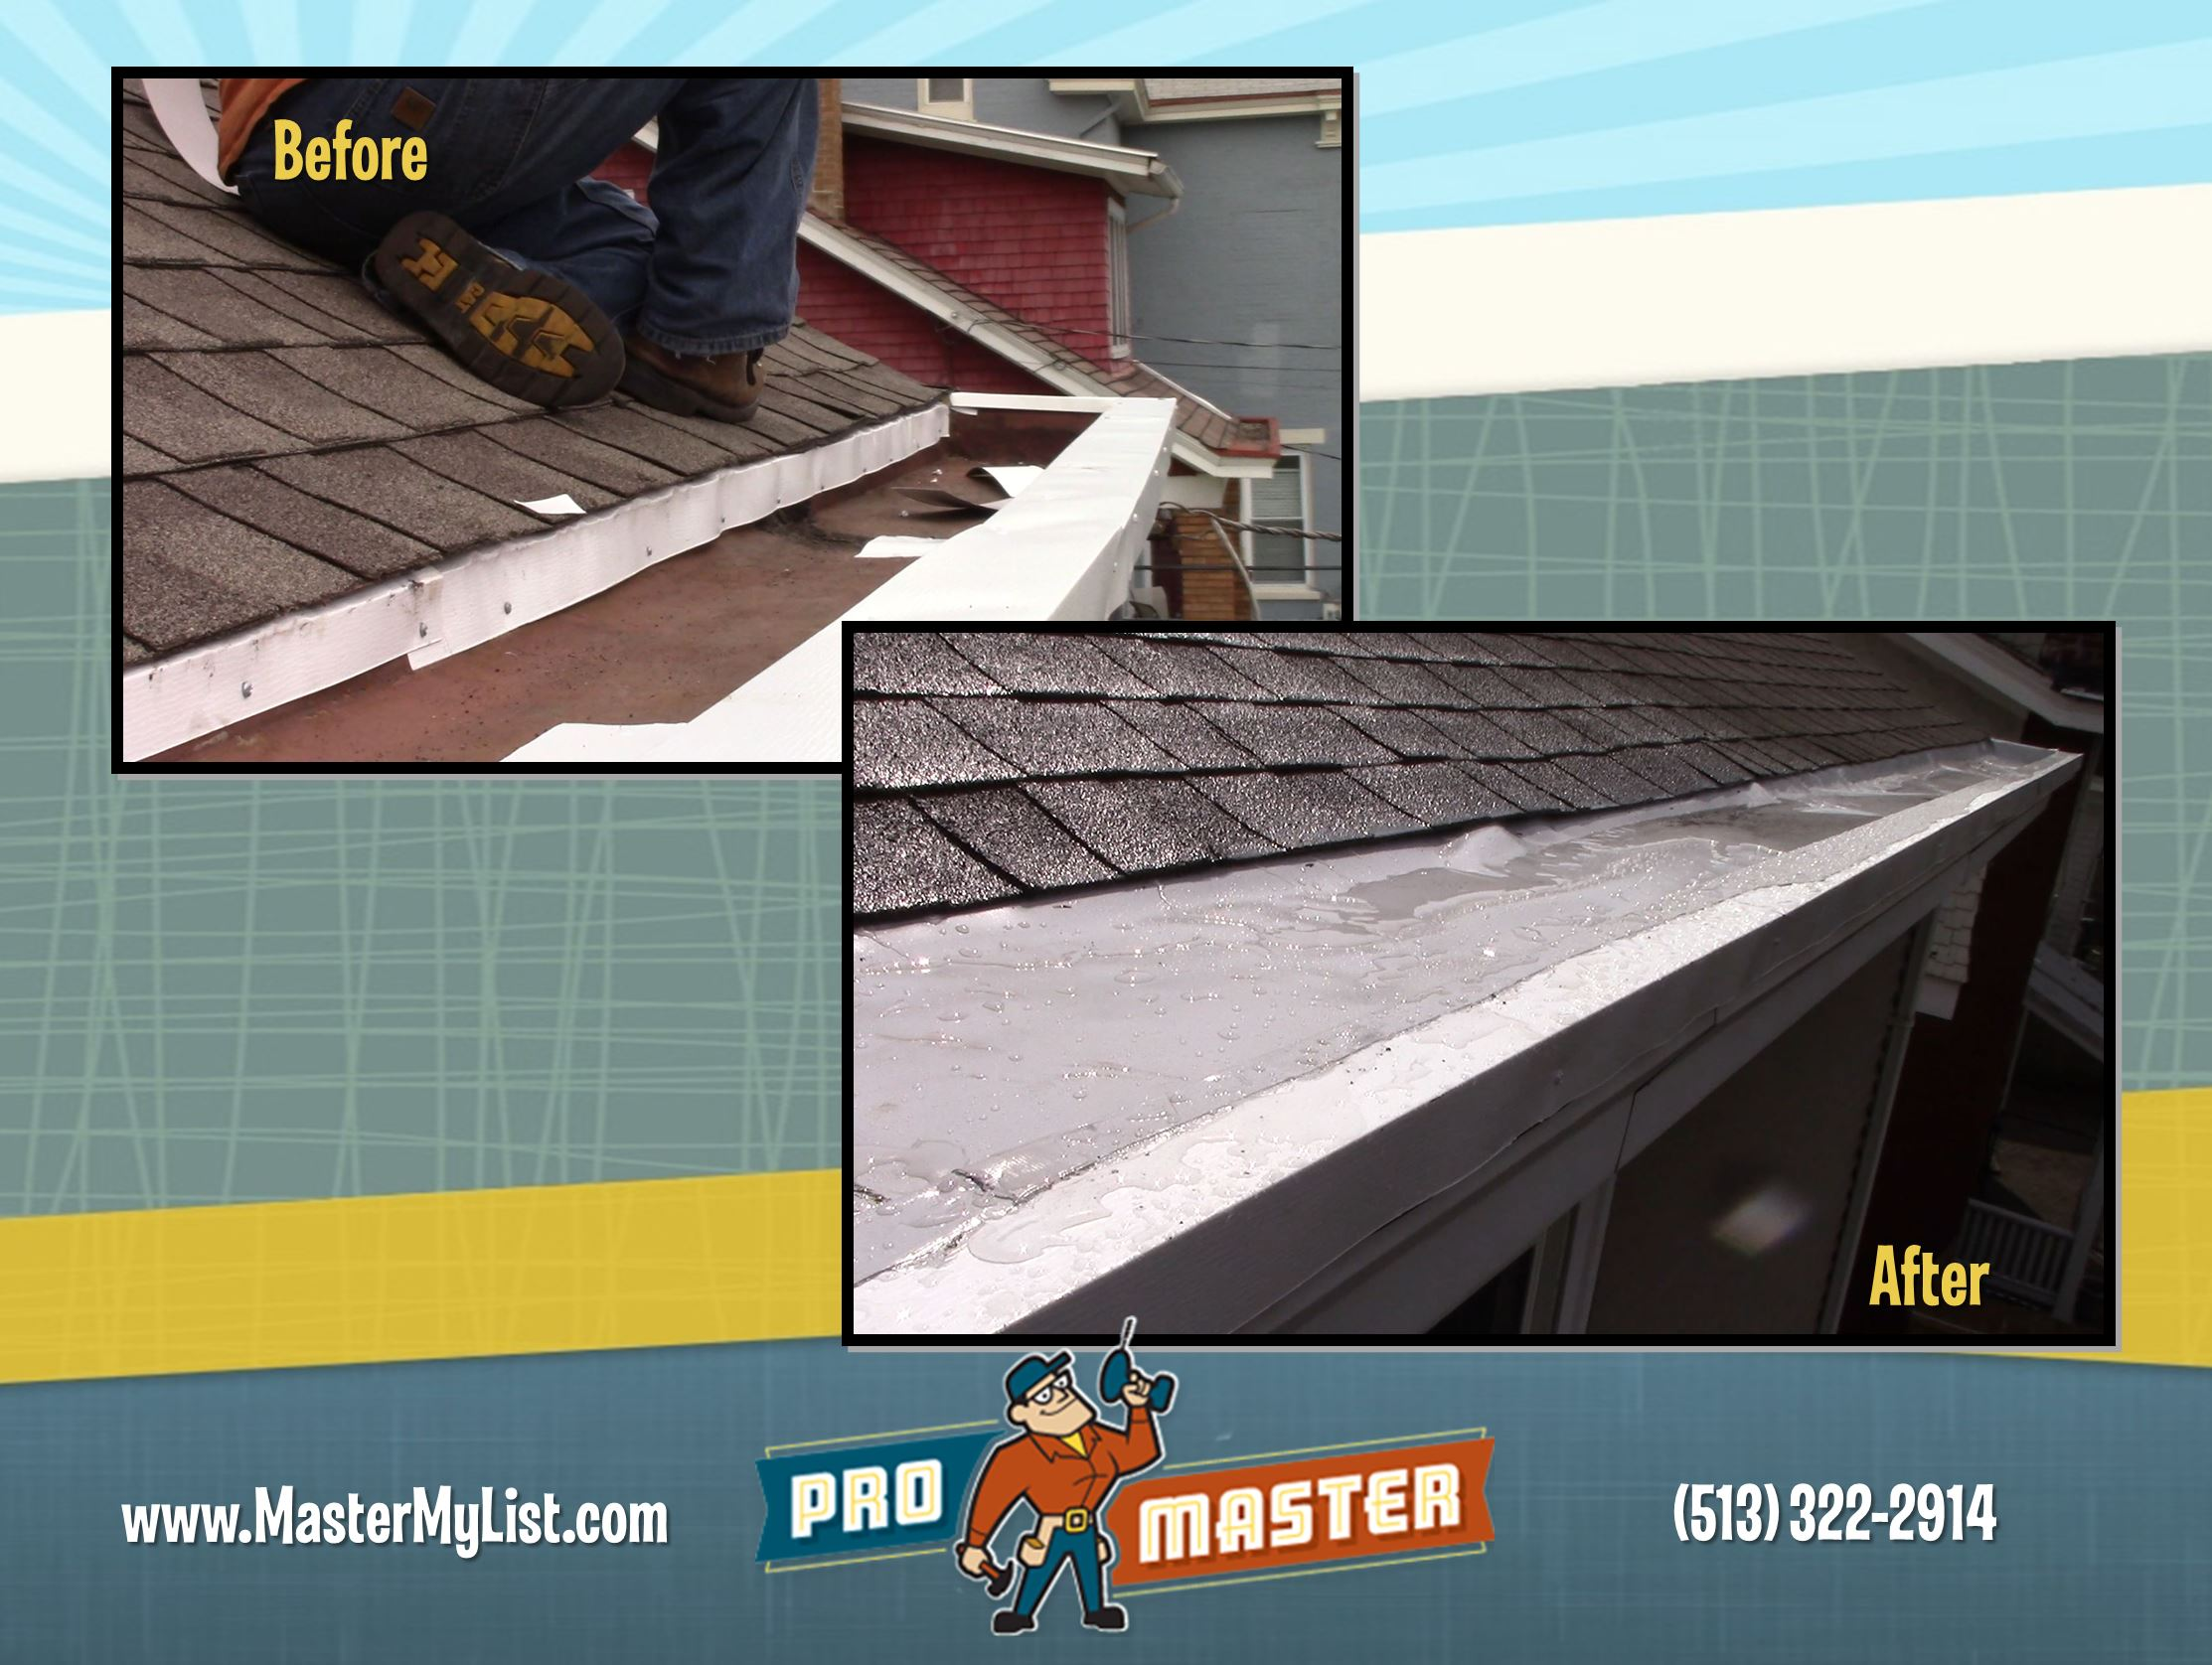 box-gutter-lining-before-after-promaster-cincinnati